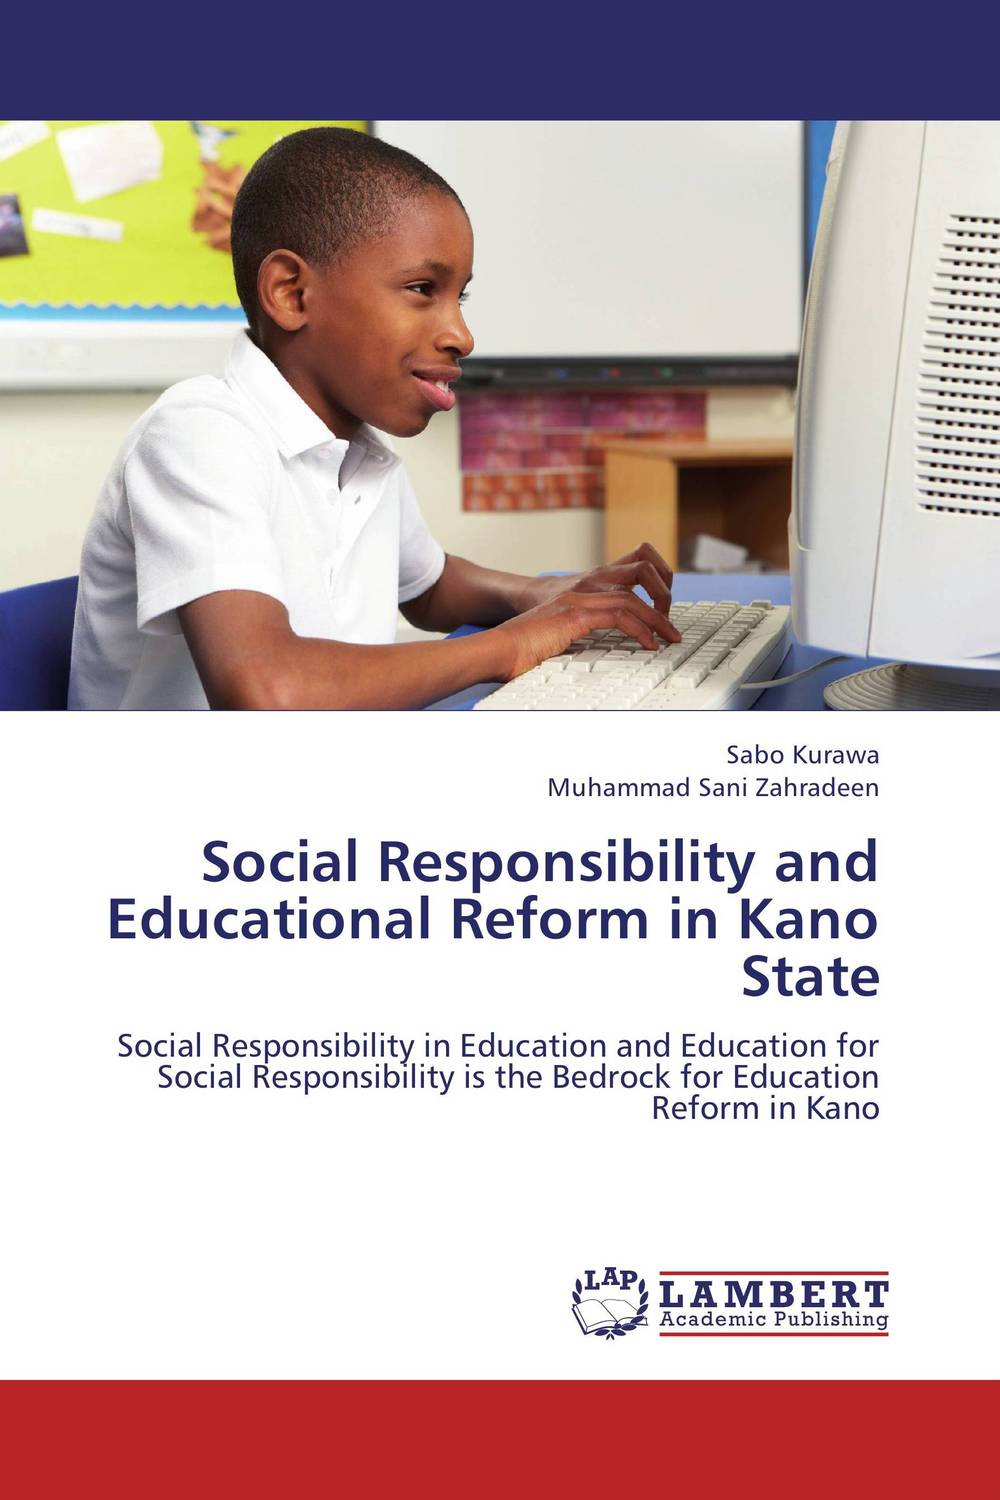 Social Responsibility and Educational Reform in Kano State